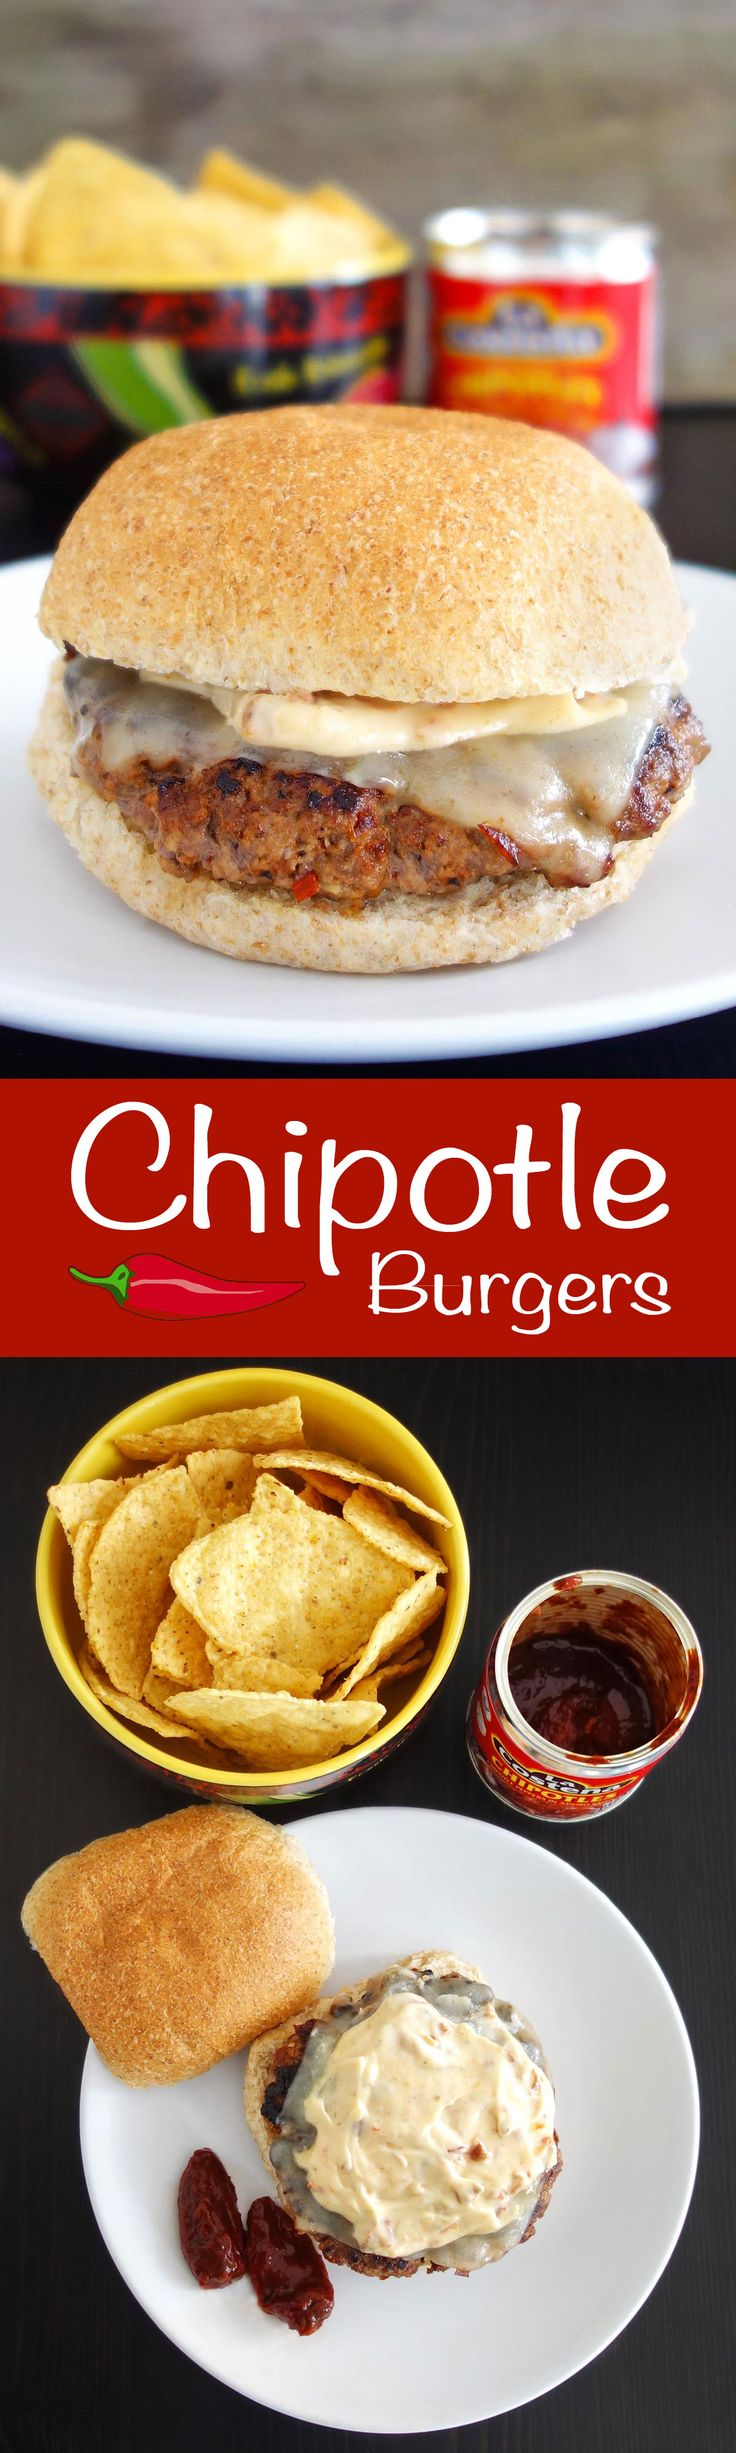 This chipotle burger recipe features the spicy, smokey chipotle pepper. Yes that's a pepper, not just a giant burrito. Topped with chipotle aioli!